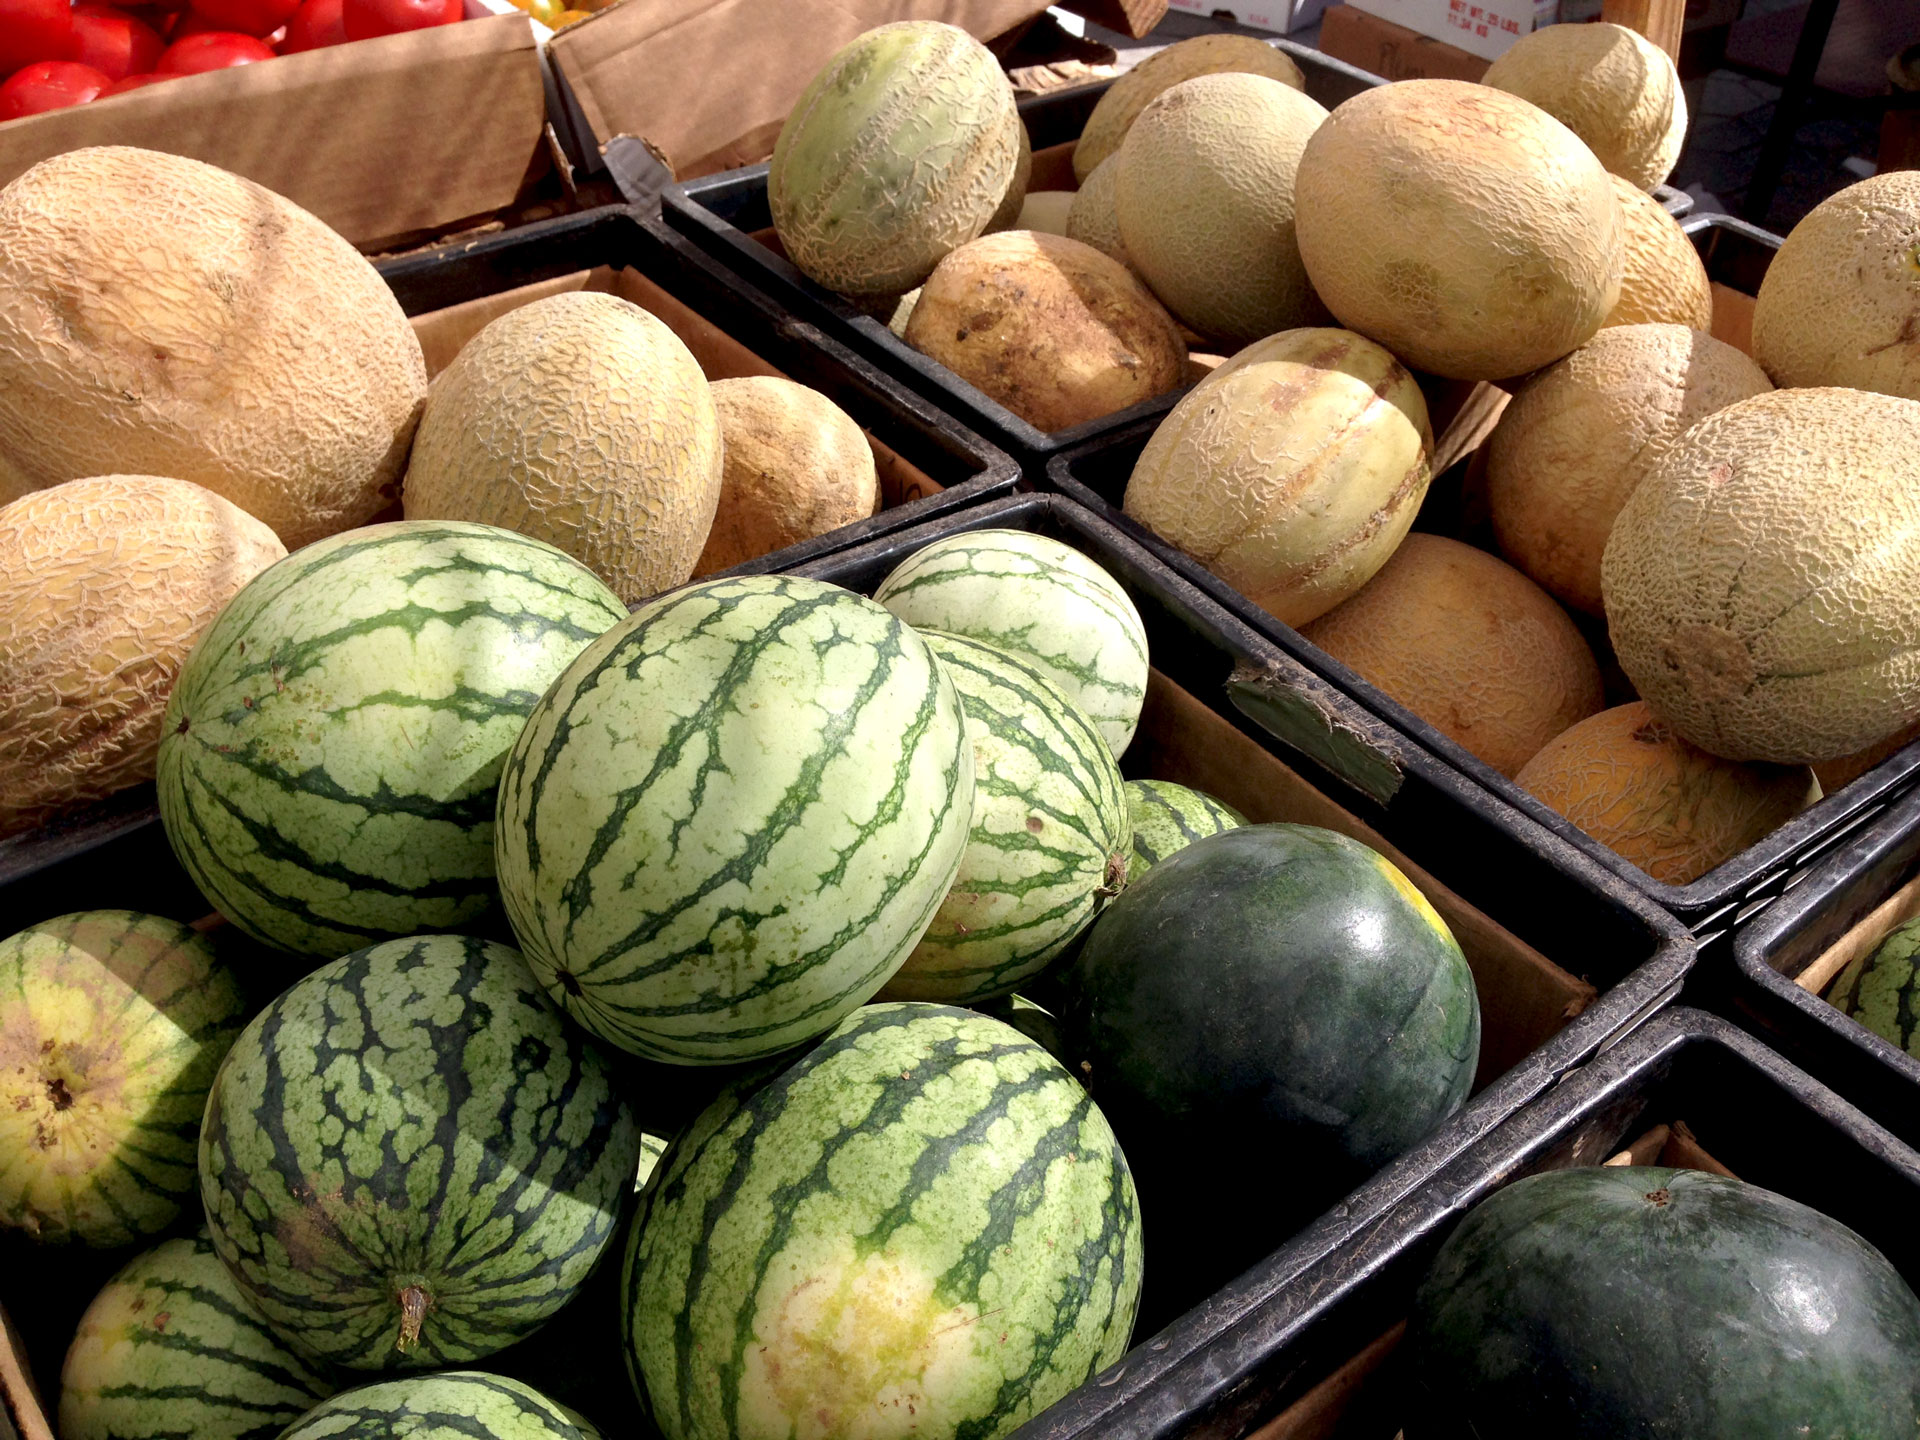 Watermelons and honeydew